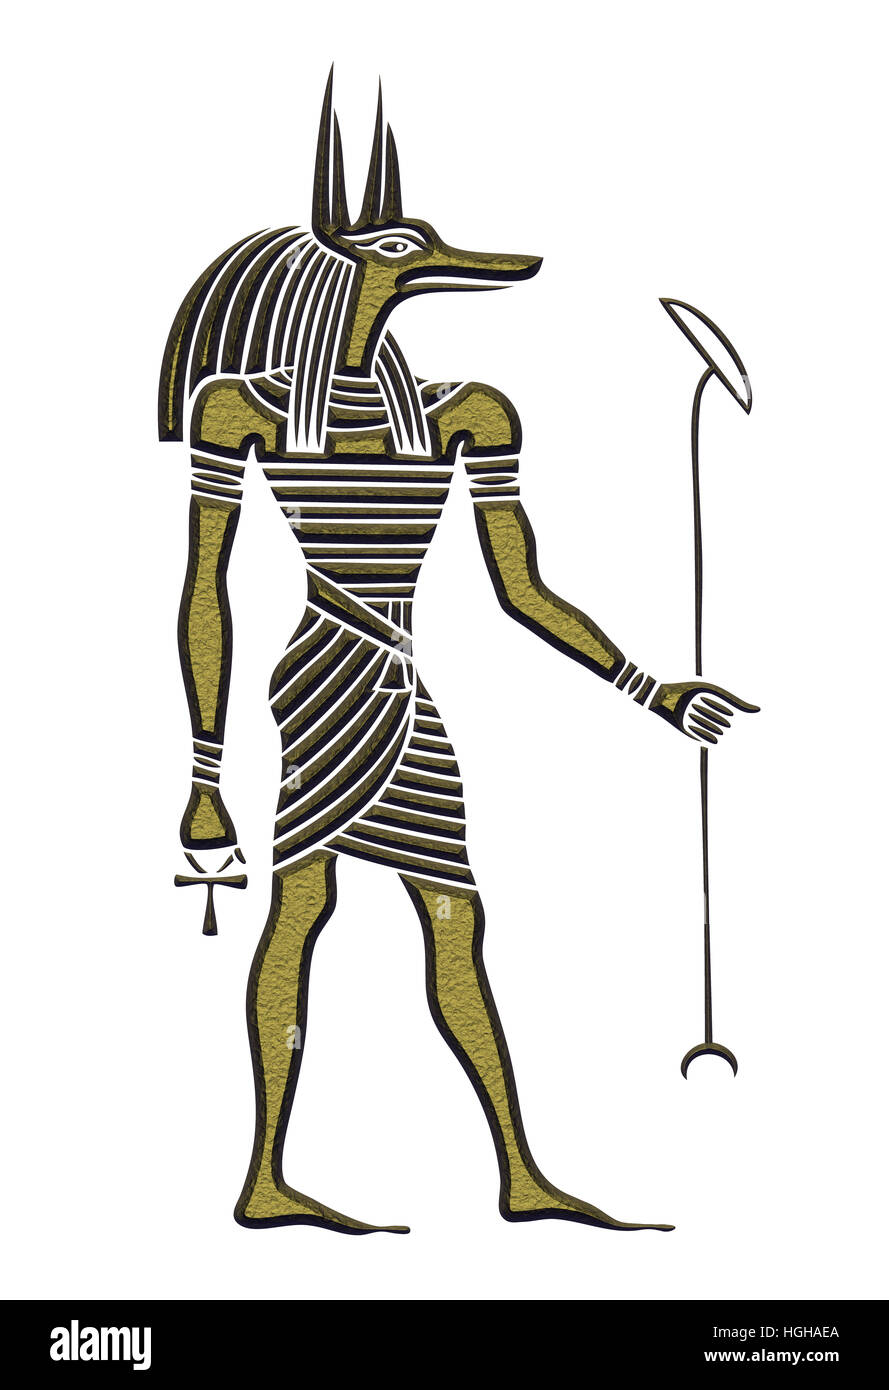 Anubis god of ancient egypt god of funerals death the dead anubis god of ancient egypt god of funerals death the dead and the afterlife buycottarizona